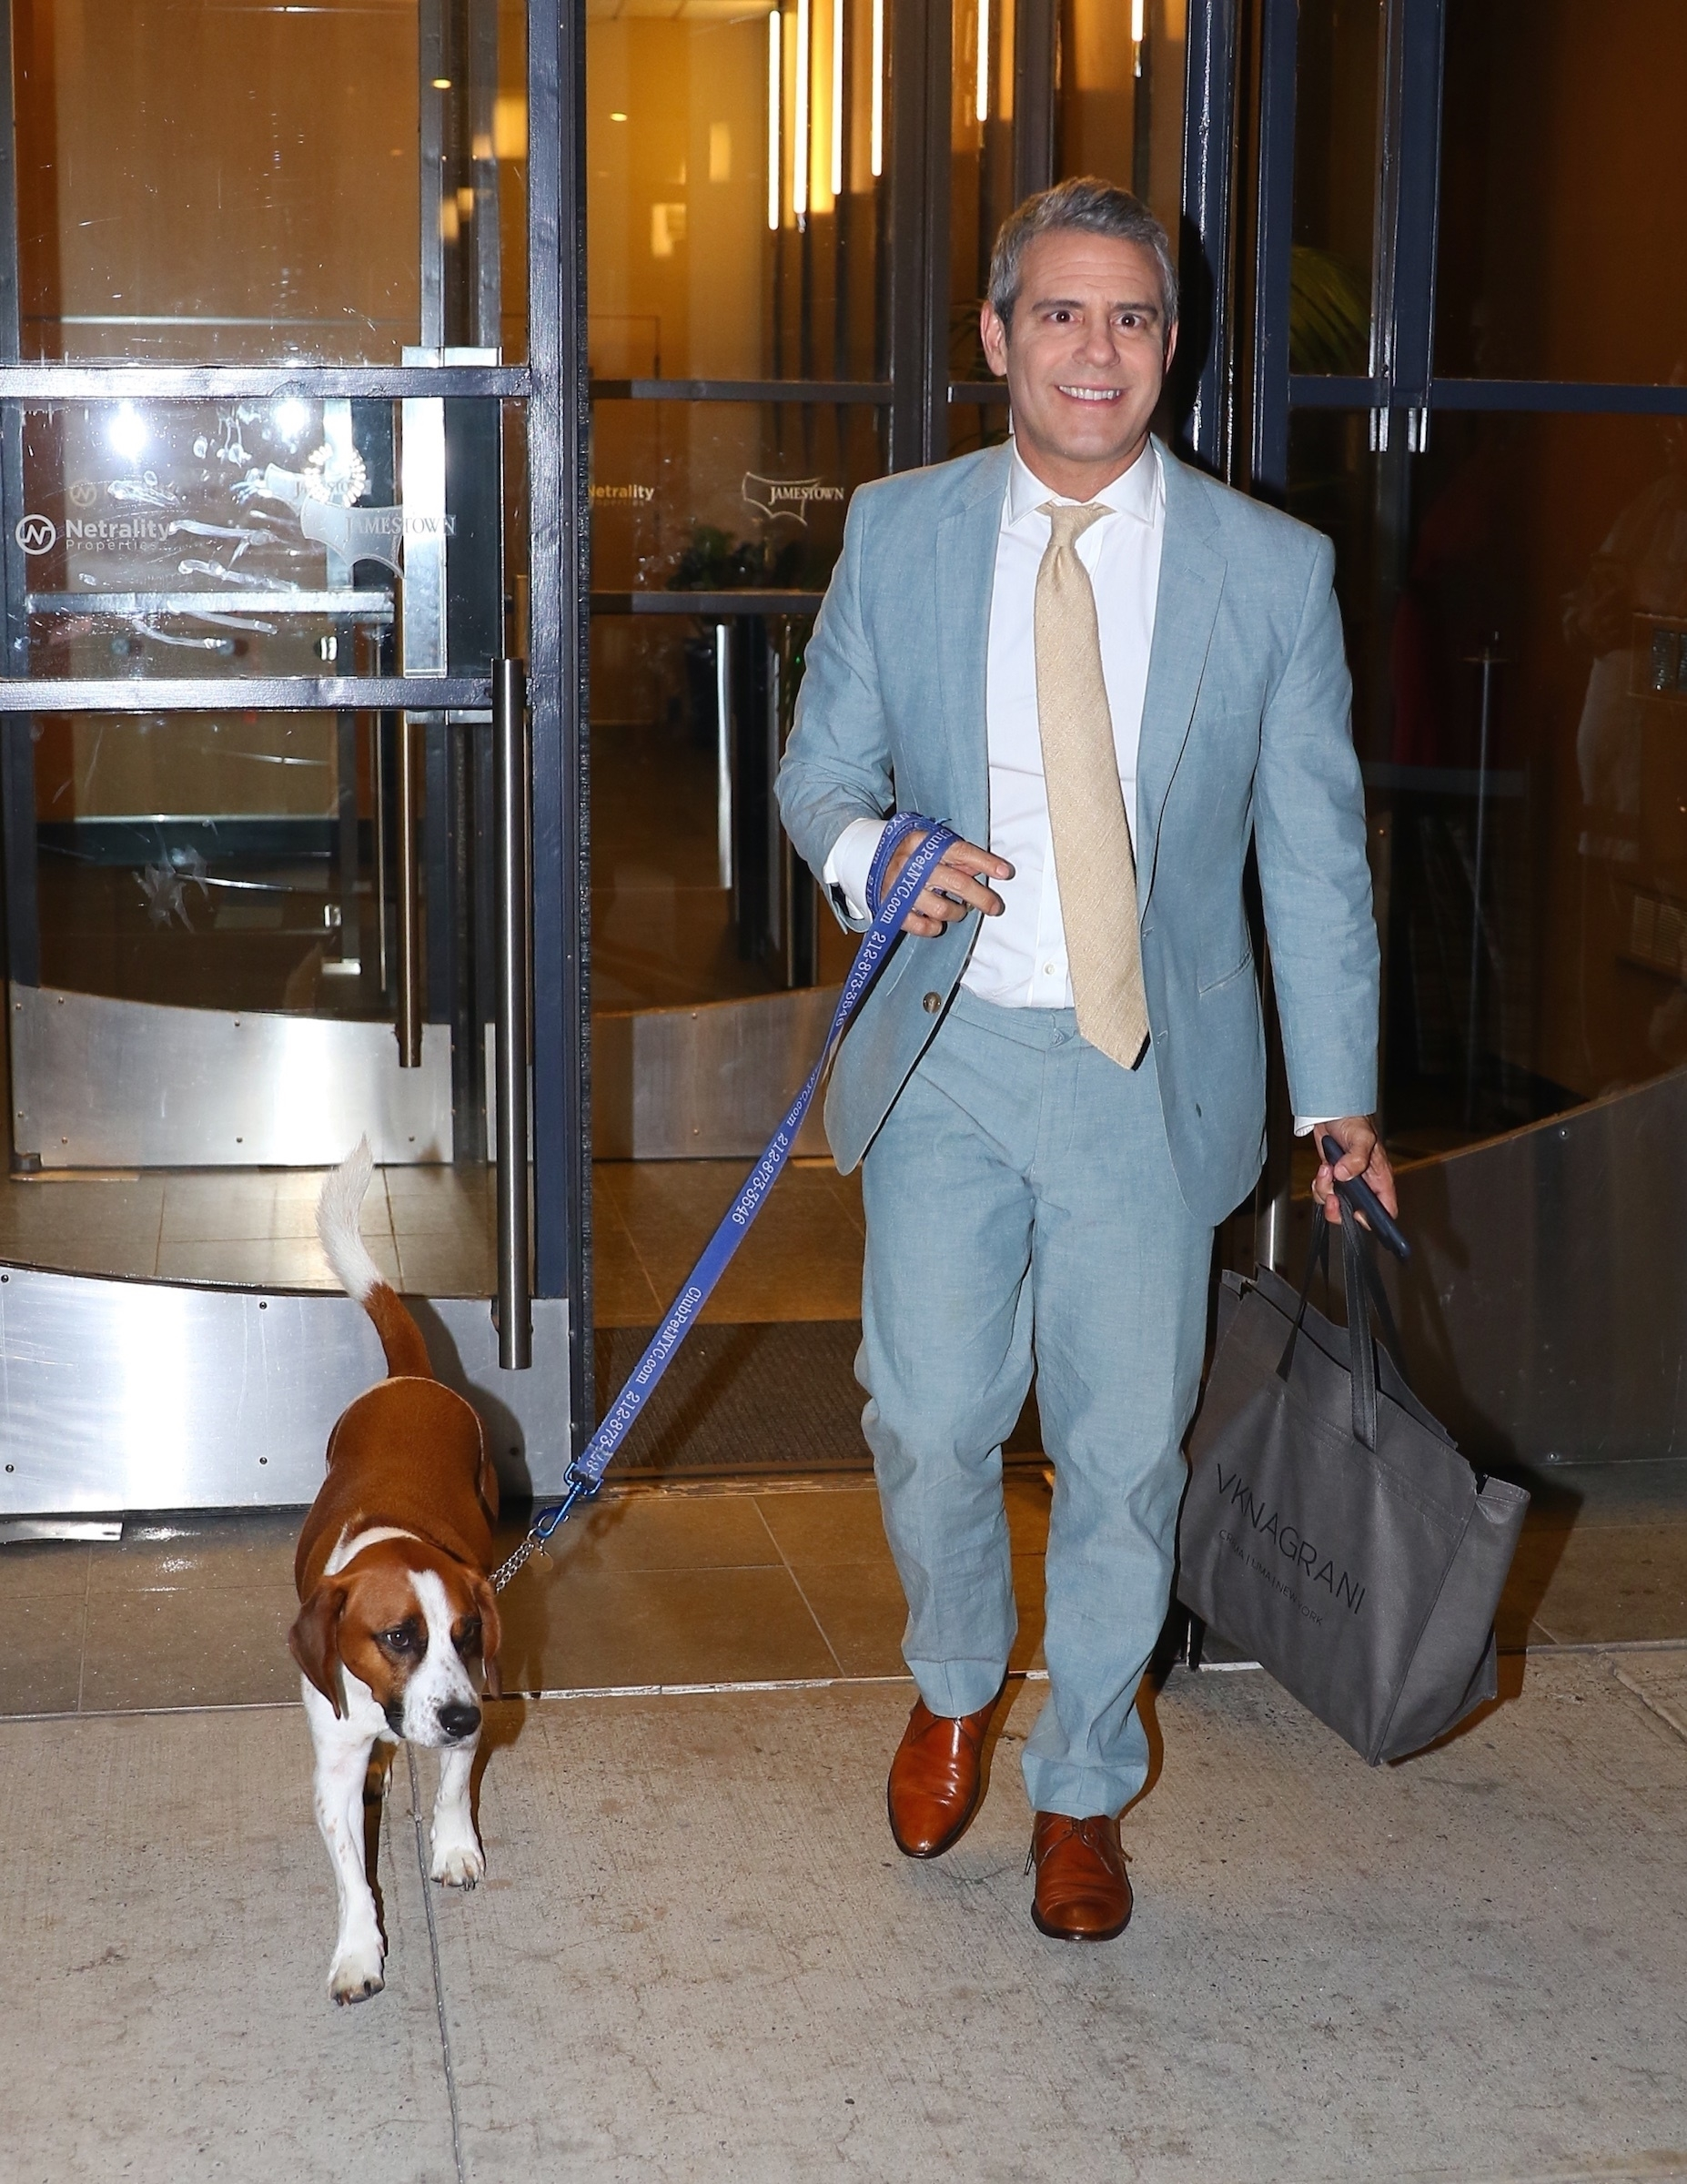 Andy Cohen and his dog Wacha leave the studio after filming an episode of 'Watch What Happens Live' in New York City on Aug. 1, 2017.